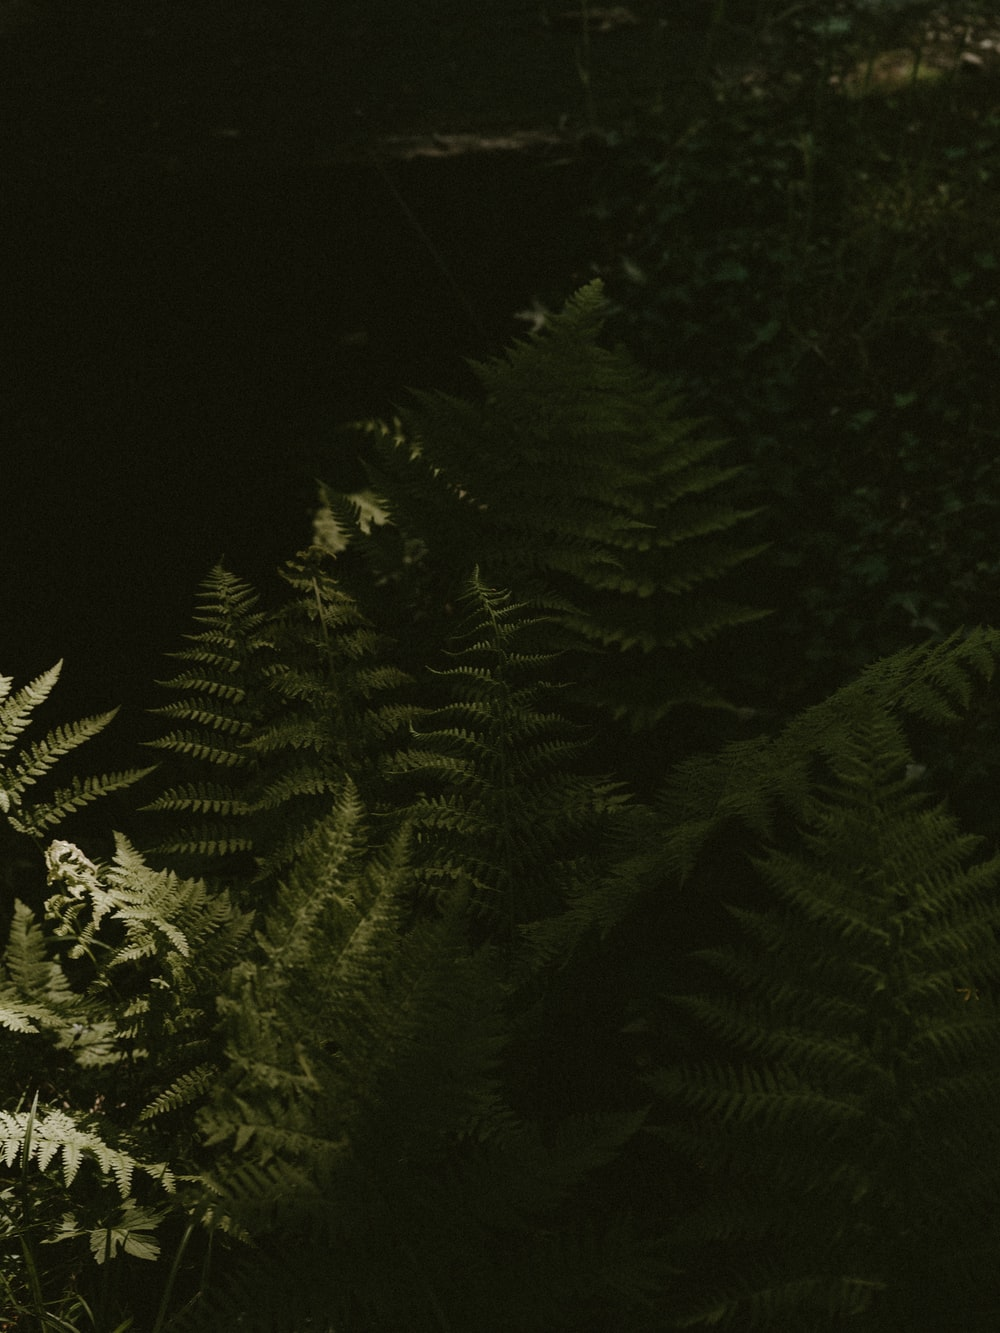 green fern plant close-up photography